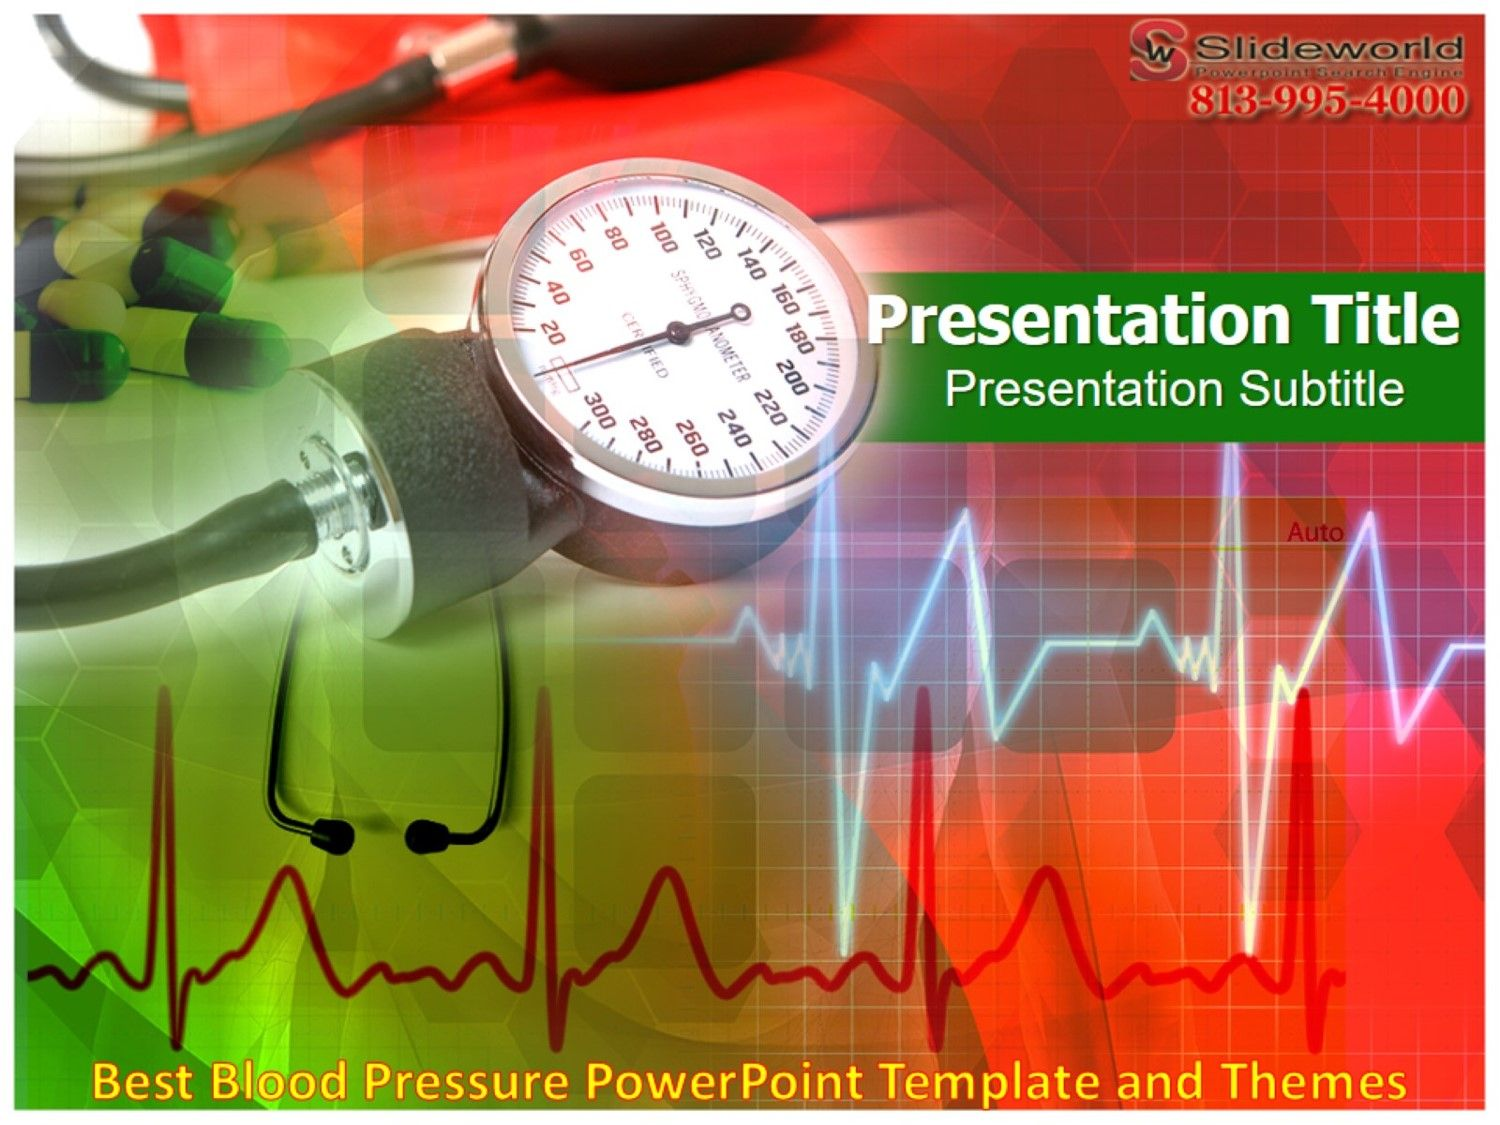 Download blood pressure powerpoint template themes here are huge download blood pressure powerpoint template themes here are huge collection of blood pressure ppt templates toneelgroepblik Images